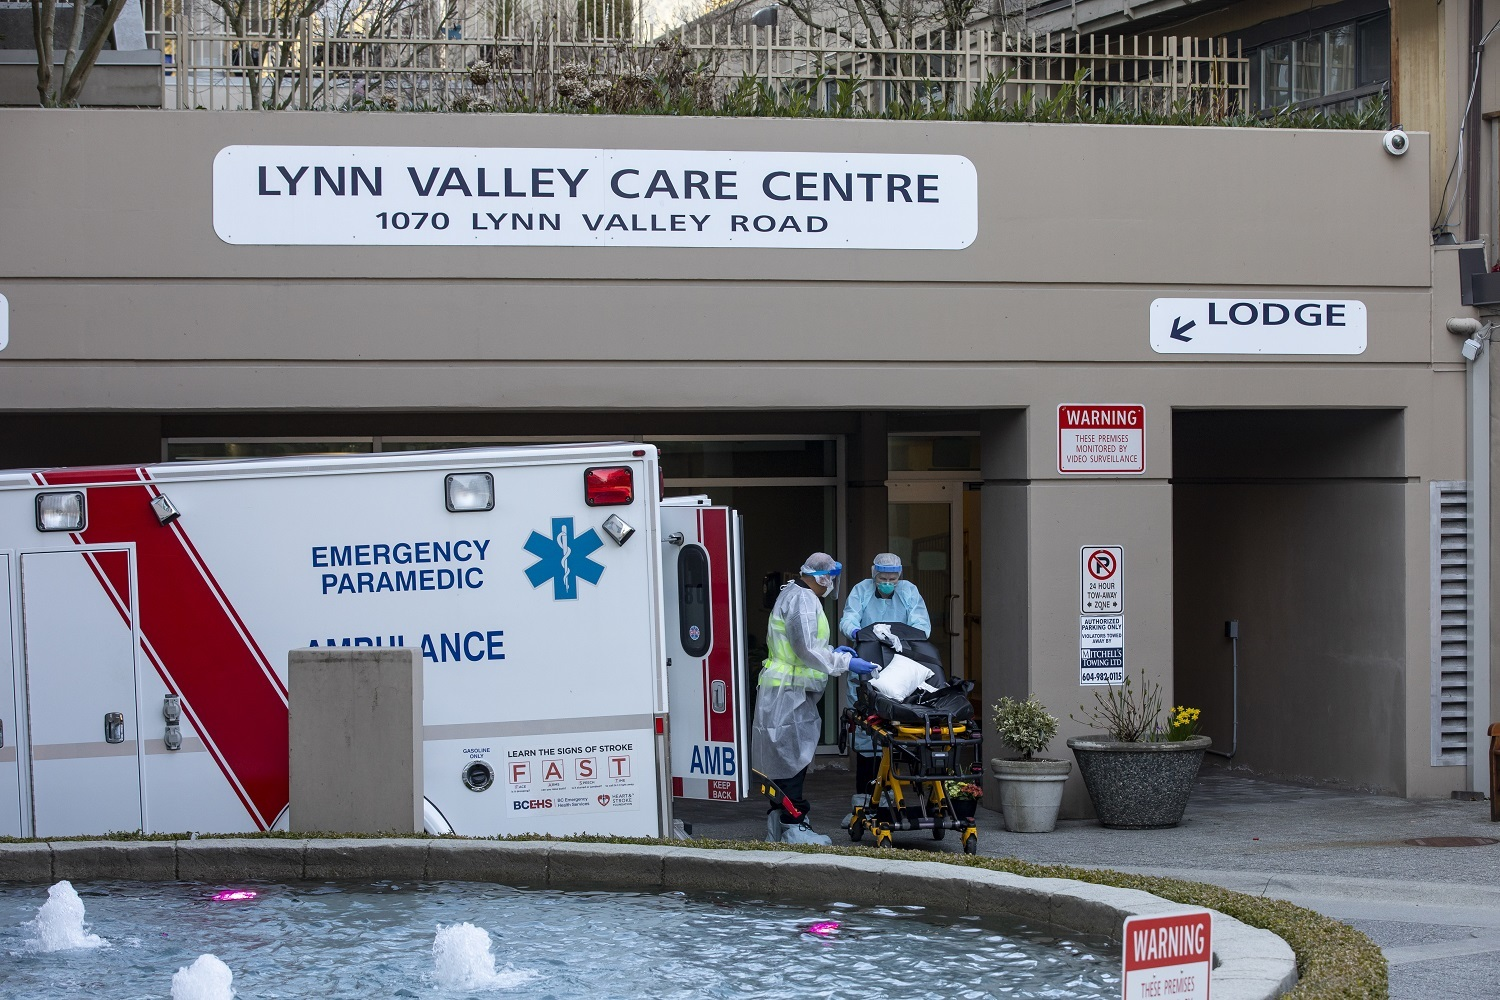 Paramedics wearing full body protective equipment clean a stretcher after responding to a call at the Lynn Valley Care Centre in North Vancouver, British Columbia on Friday, March 20, 2020. (Ben Nelms/CBC)